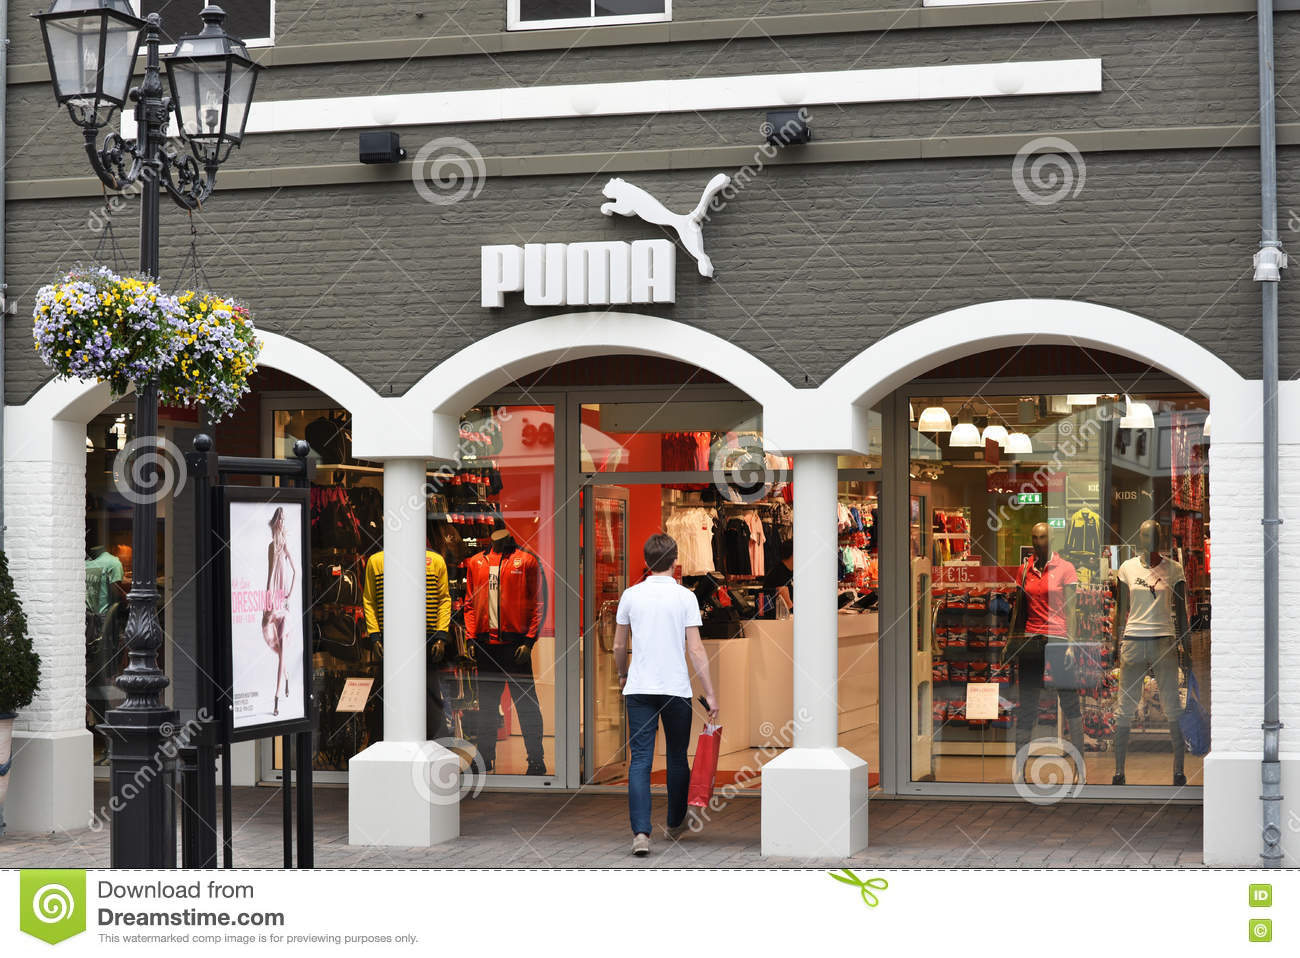 Puma brand shop editorial stock image image of german for Outlet design